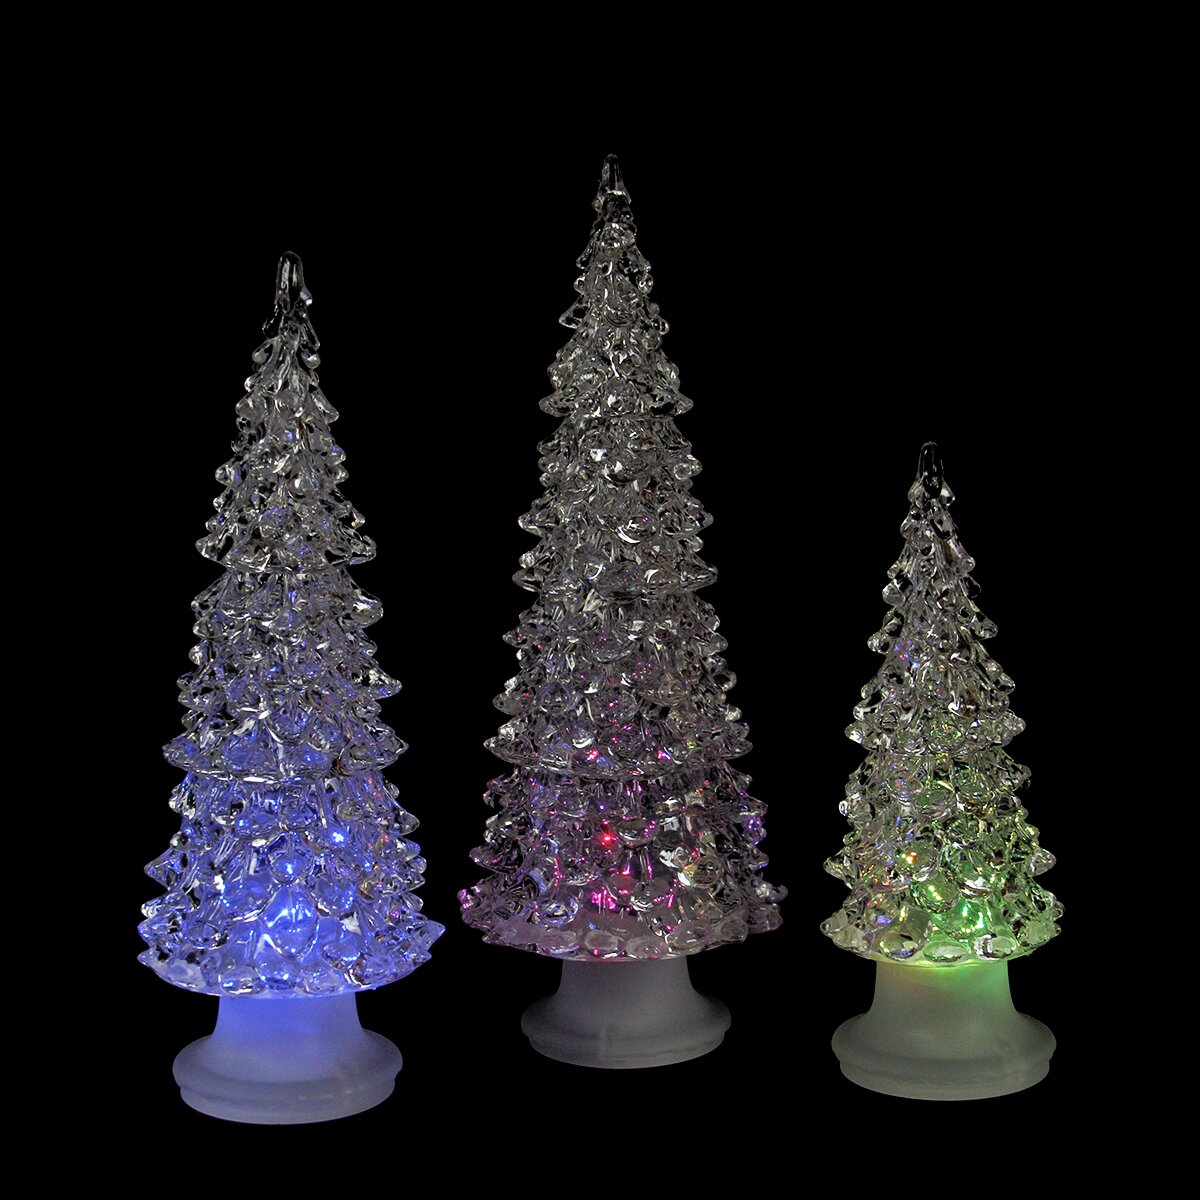 Icy Crystal 3 Piece LED Christmas Trees Battery Operated ...